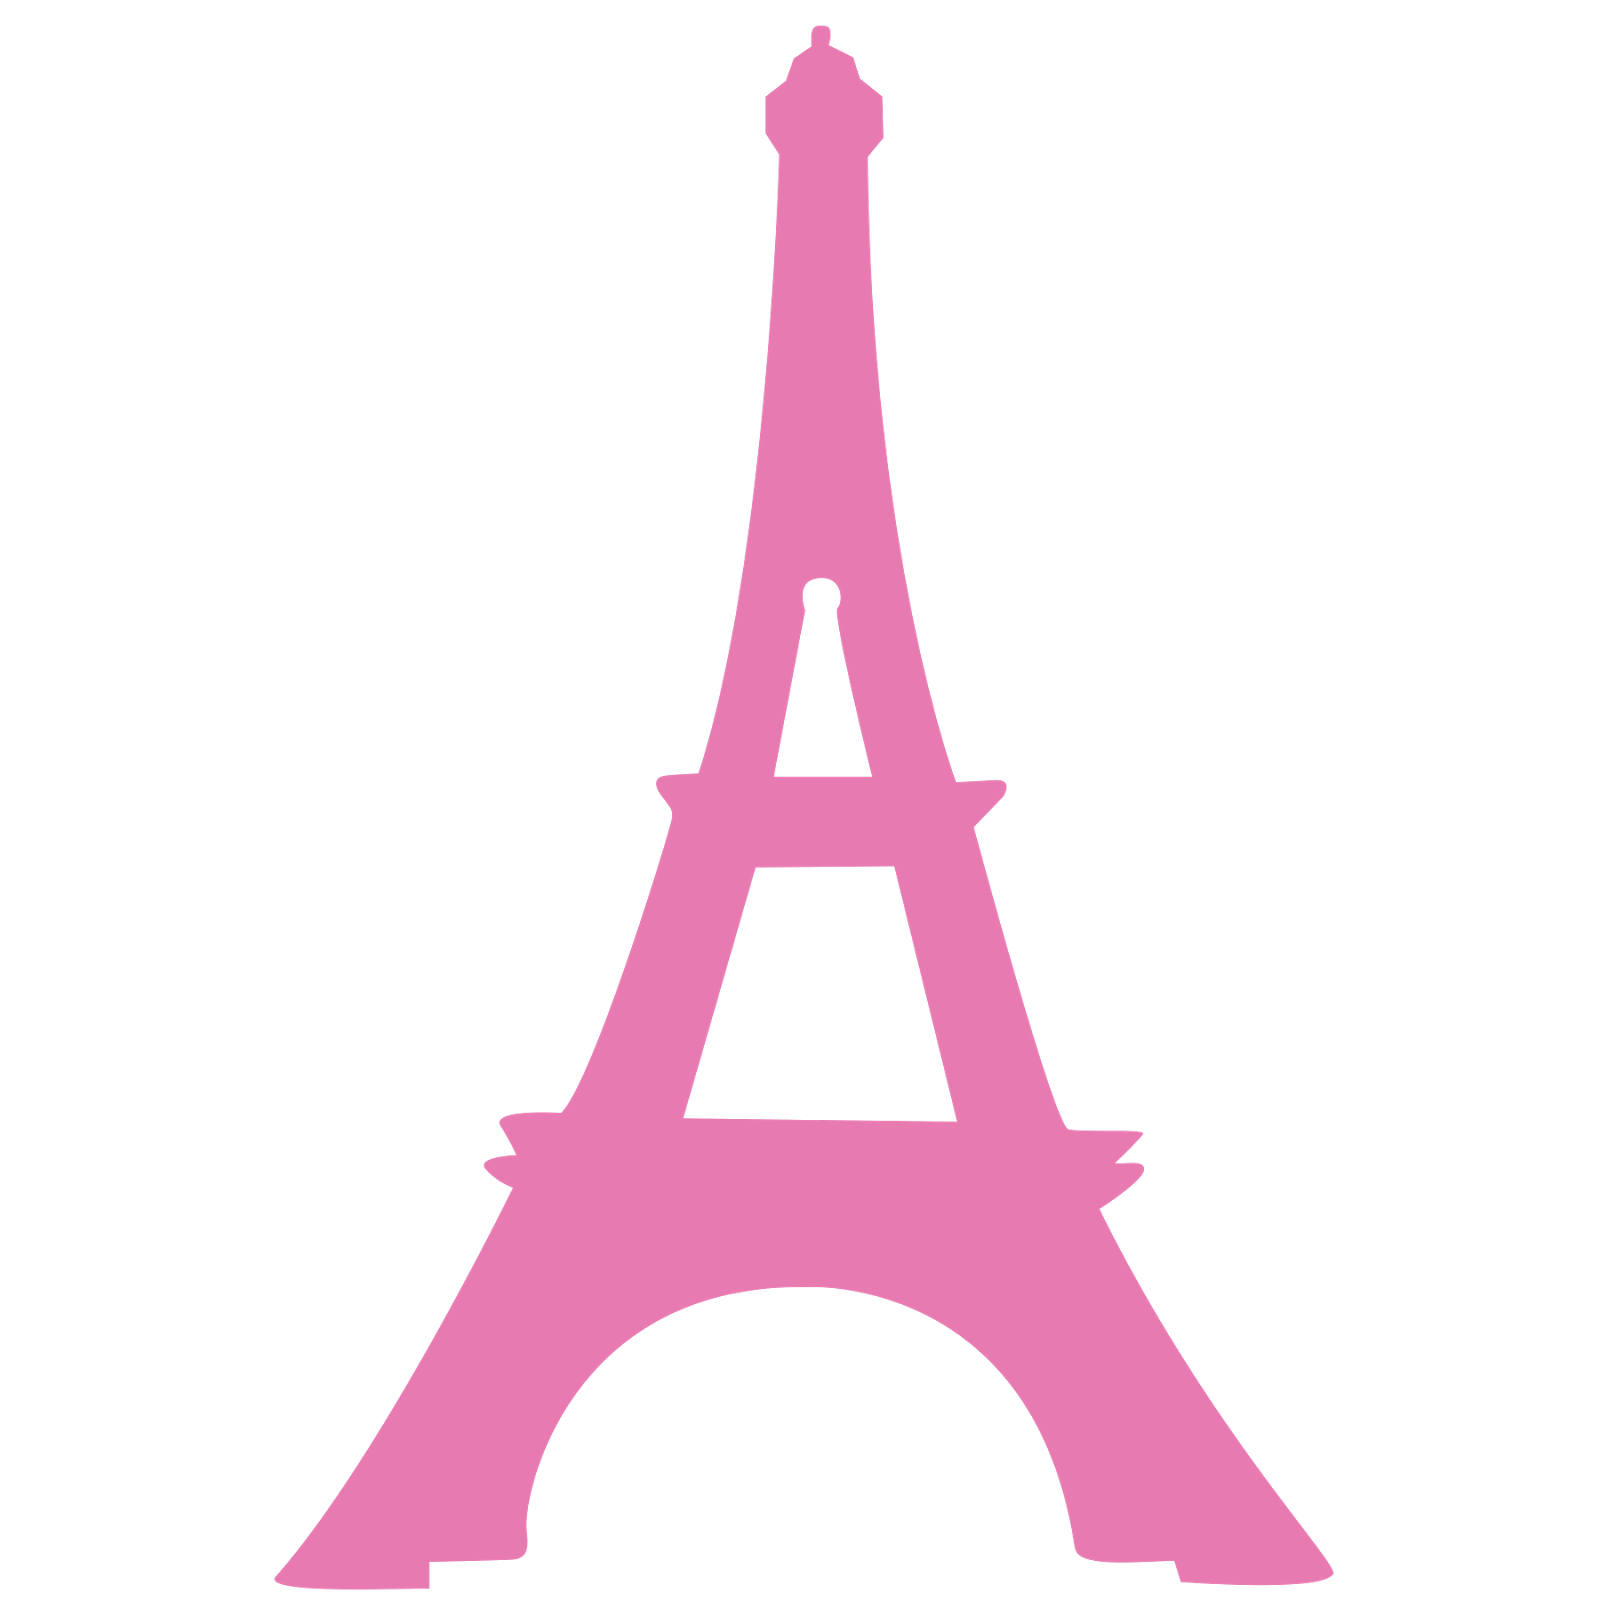 sexy paris clipart oh my fiesta for ladies apron clipart images free Chef Aprons